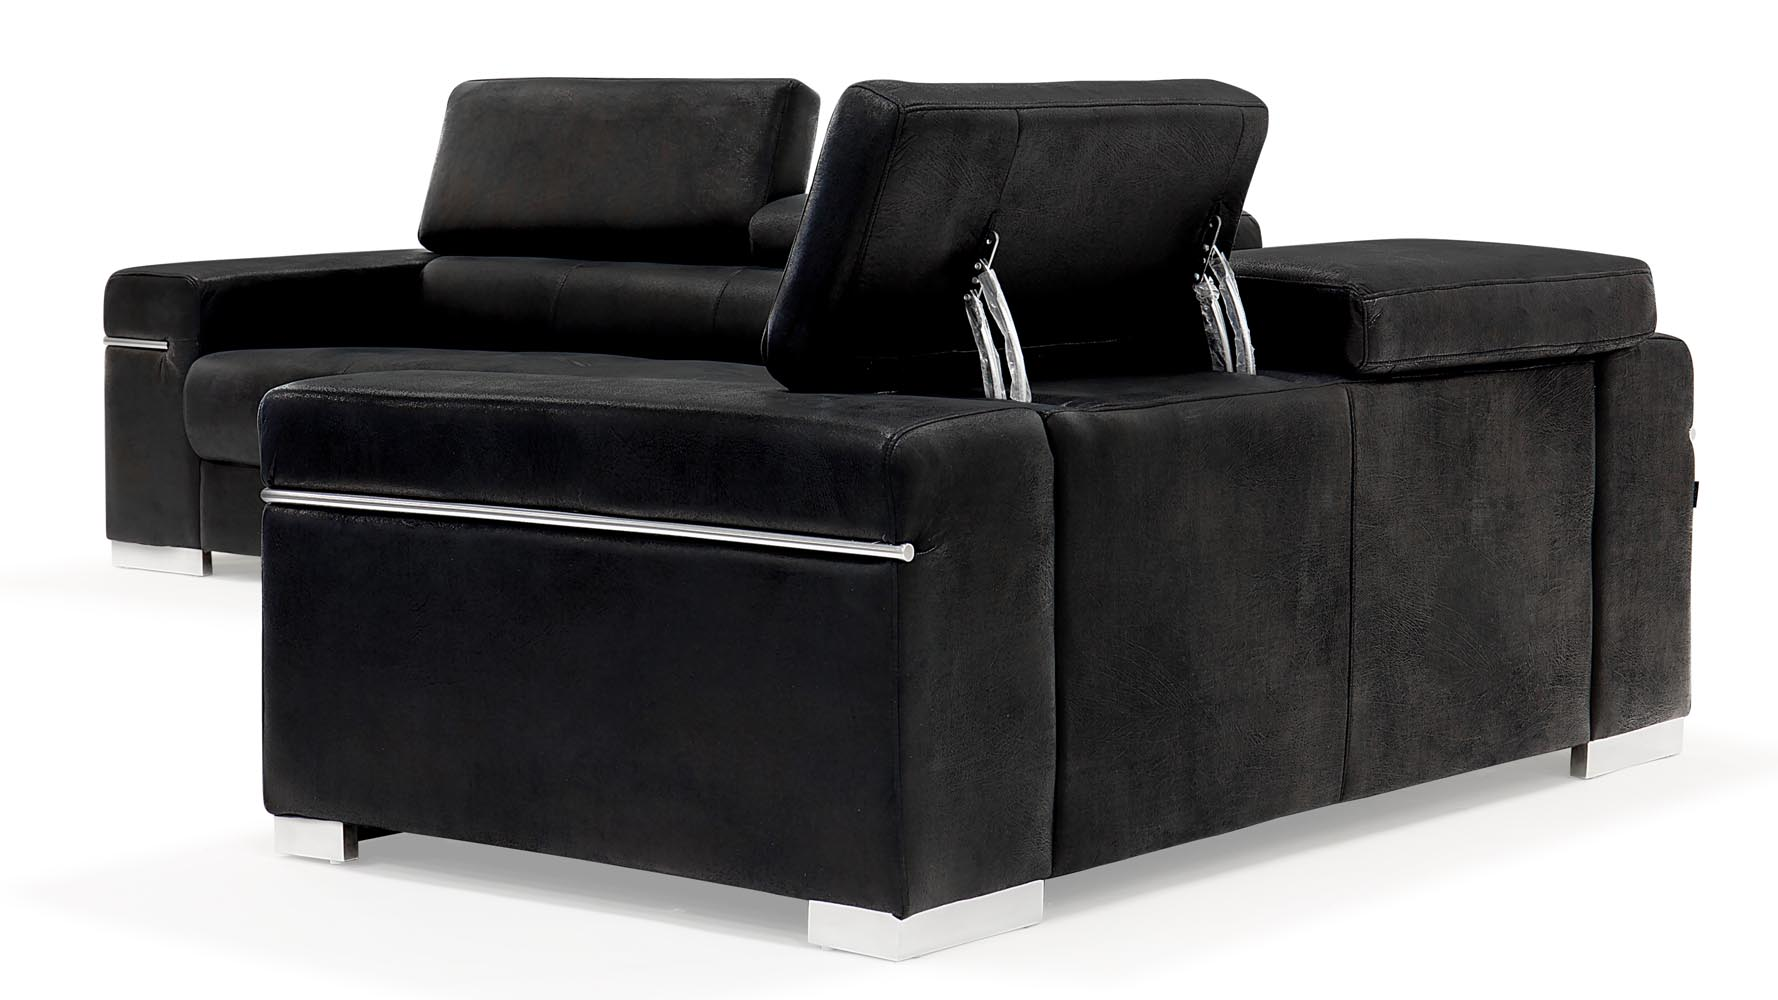 Relatively Black Angelo Suede Sofa With Loveseat | Zuri Furniture BE11